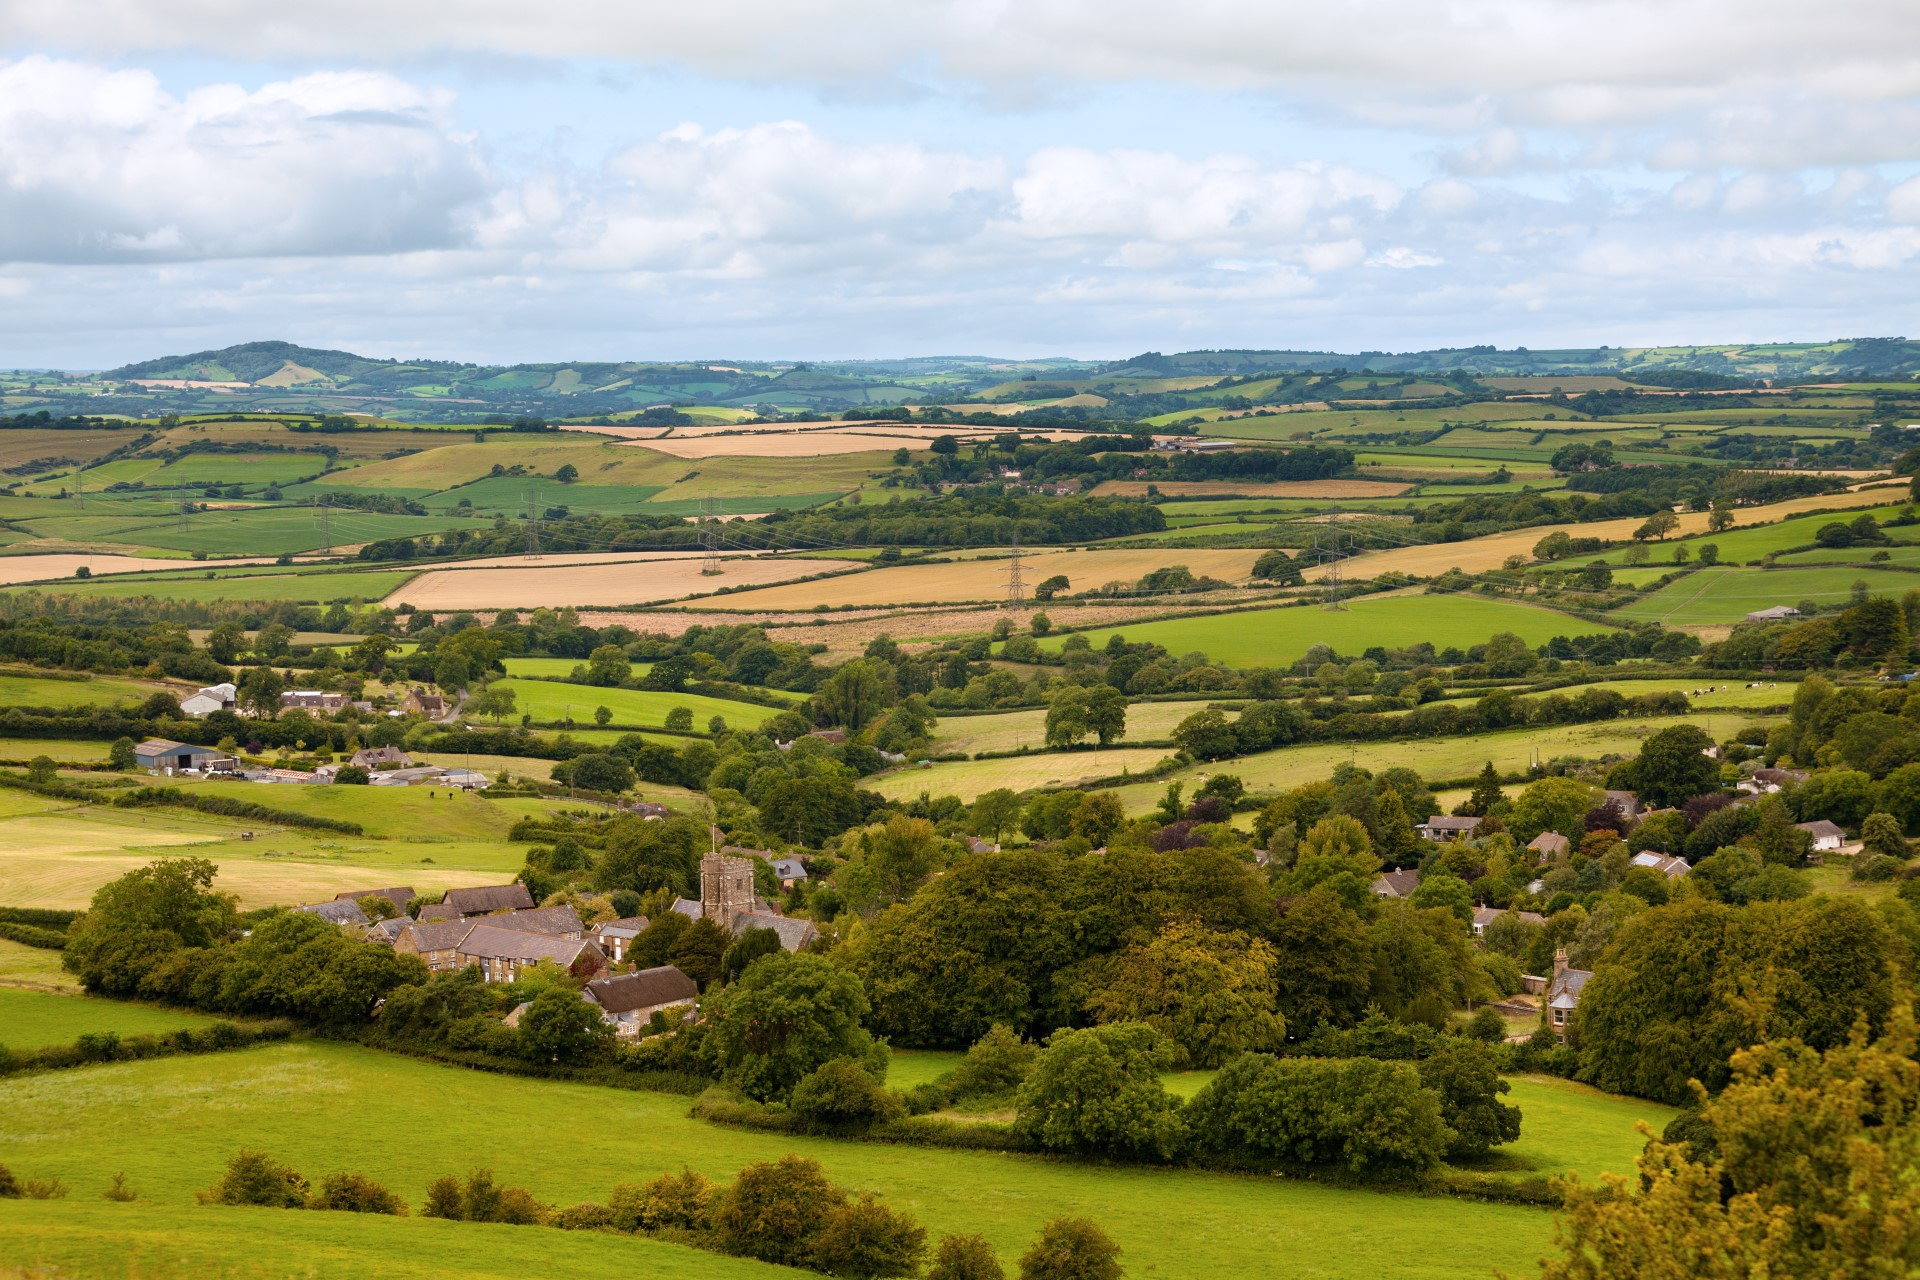 Self catering holiday cottages in Axminster in East Devon